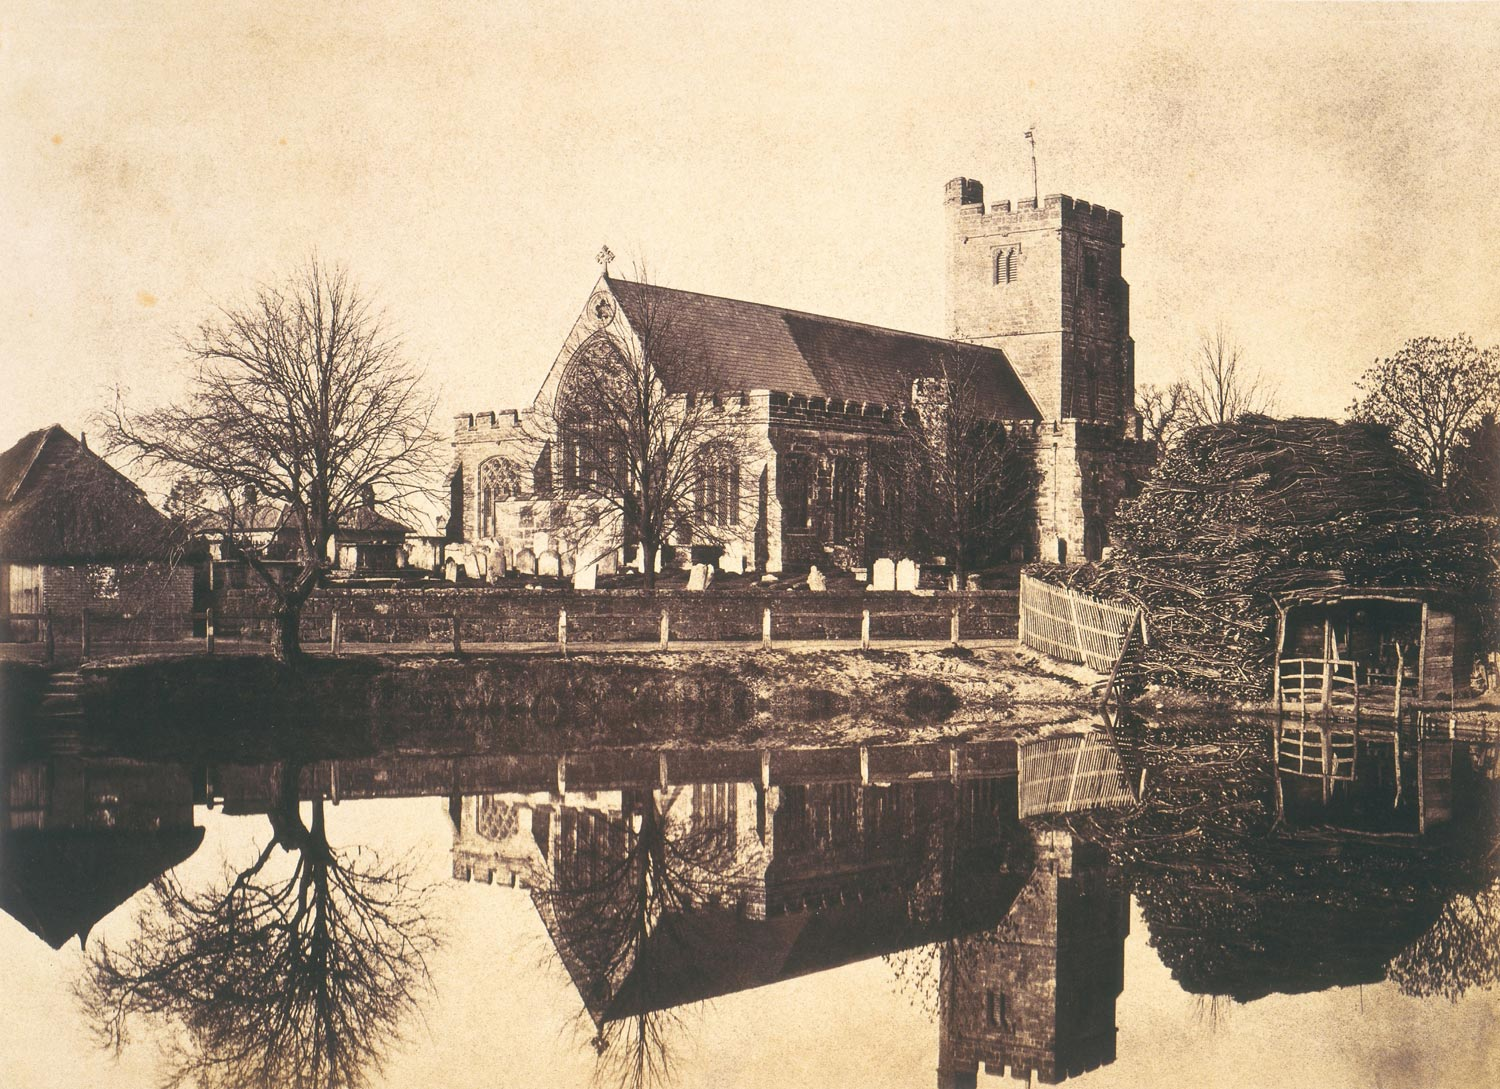 sepia toned image of a church overlooking a pond